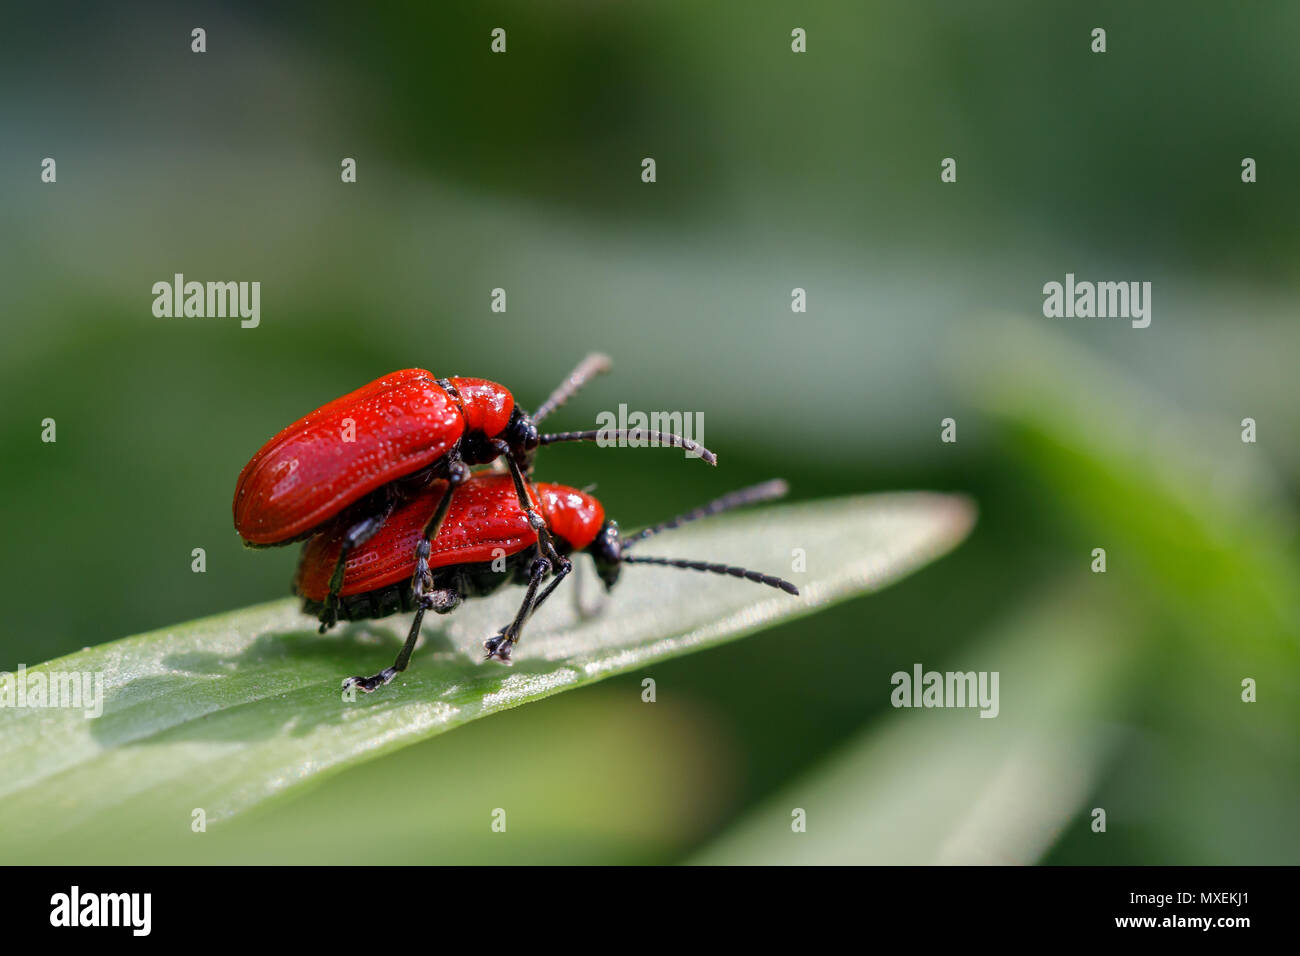 Free relations in insects. Beetles on a walk - Stock Image